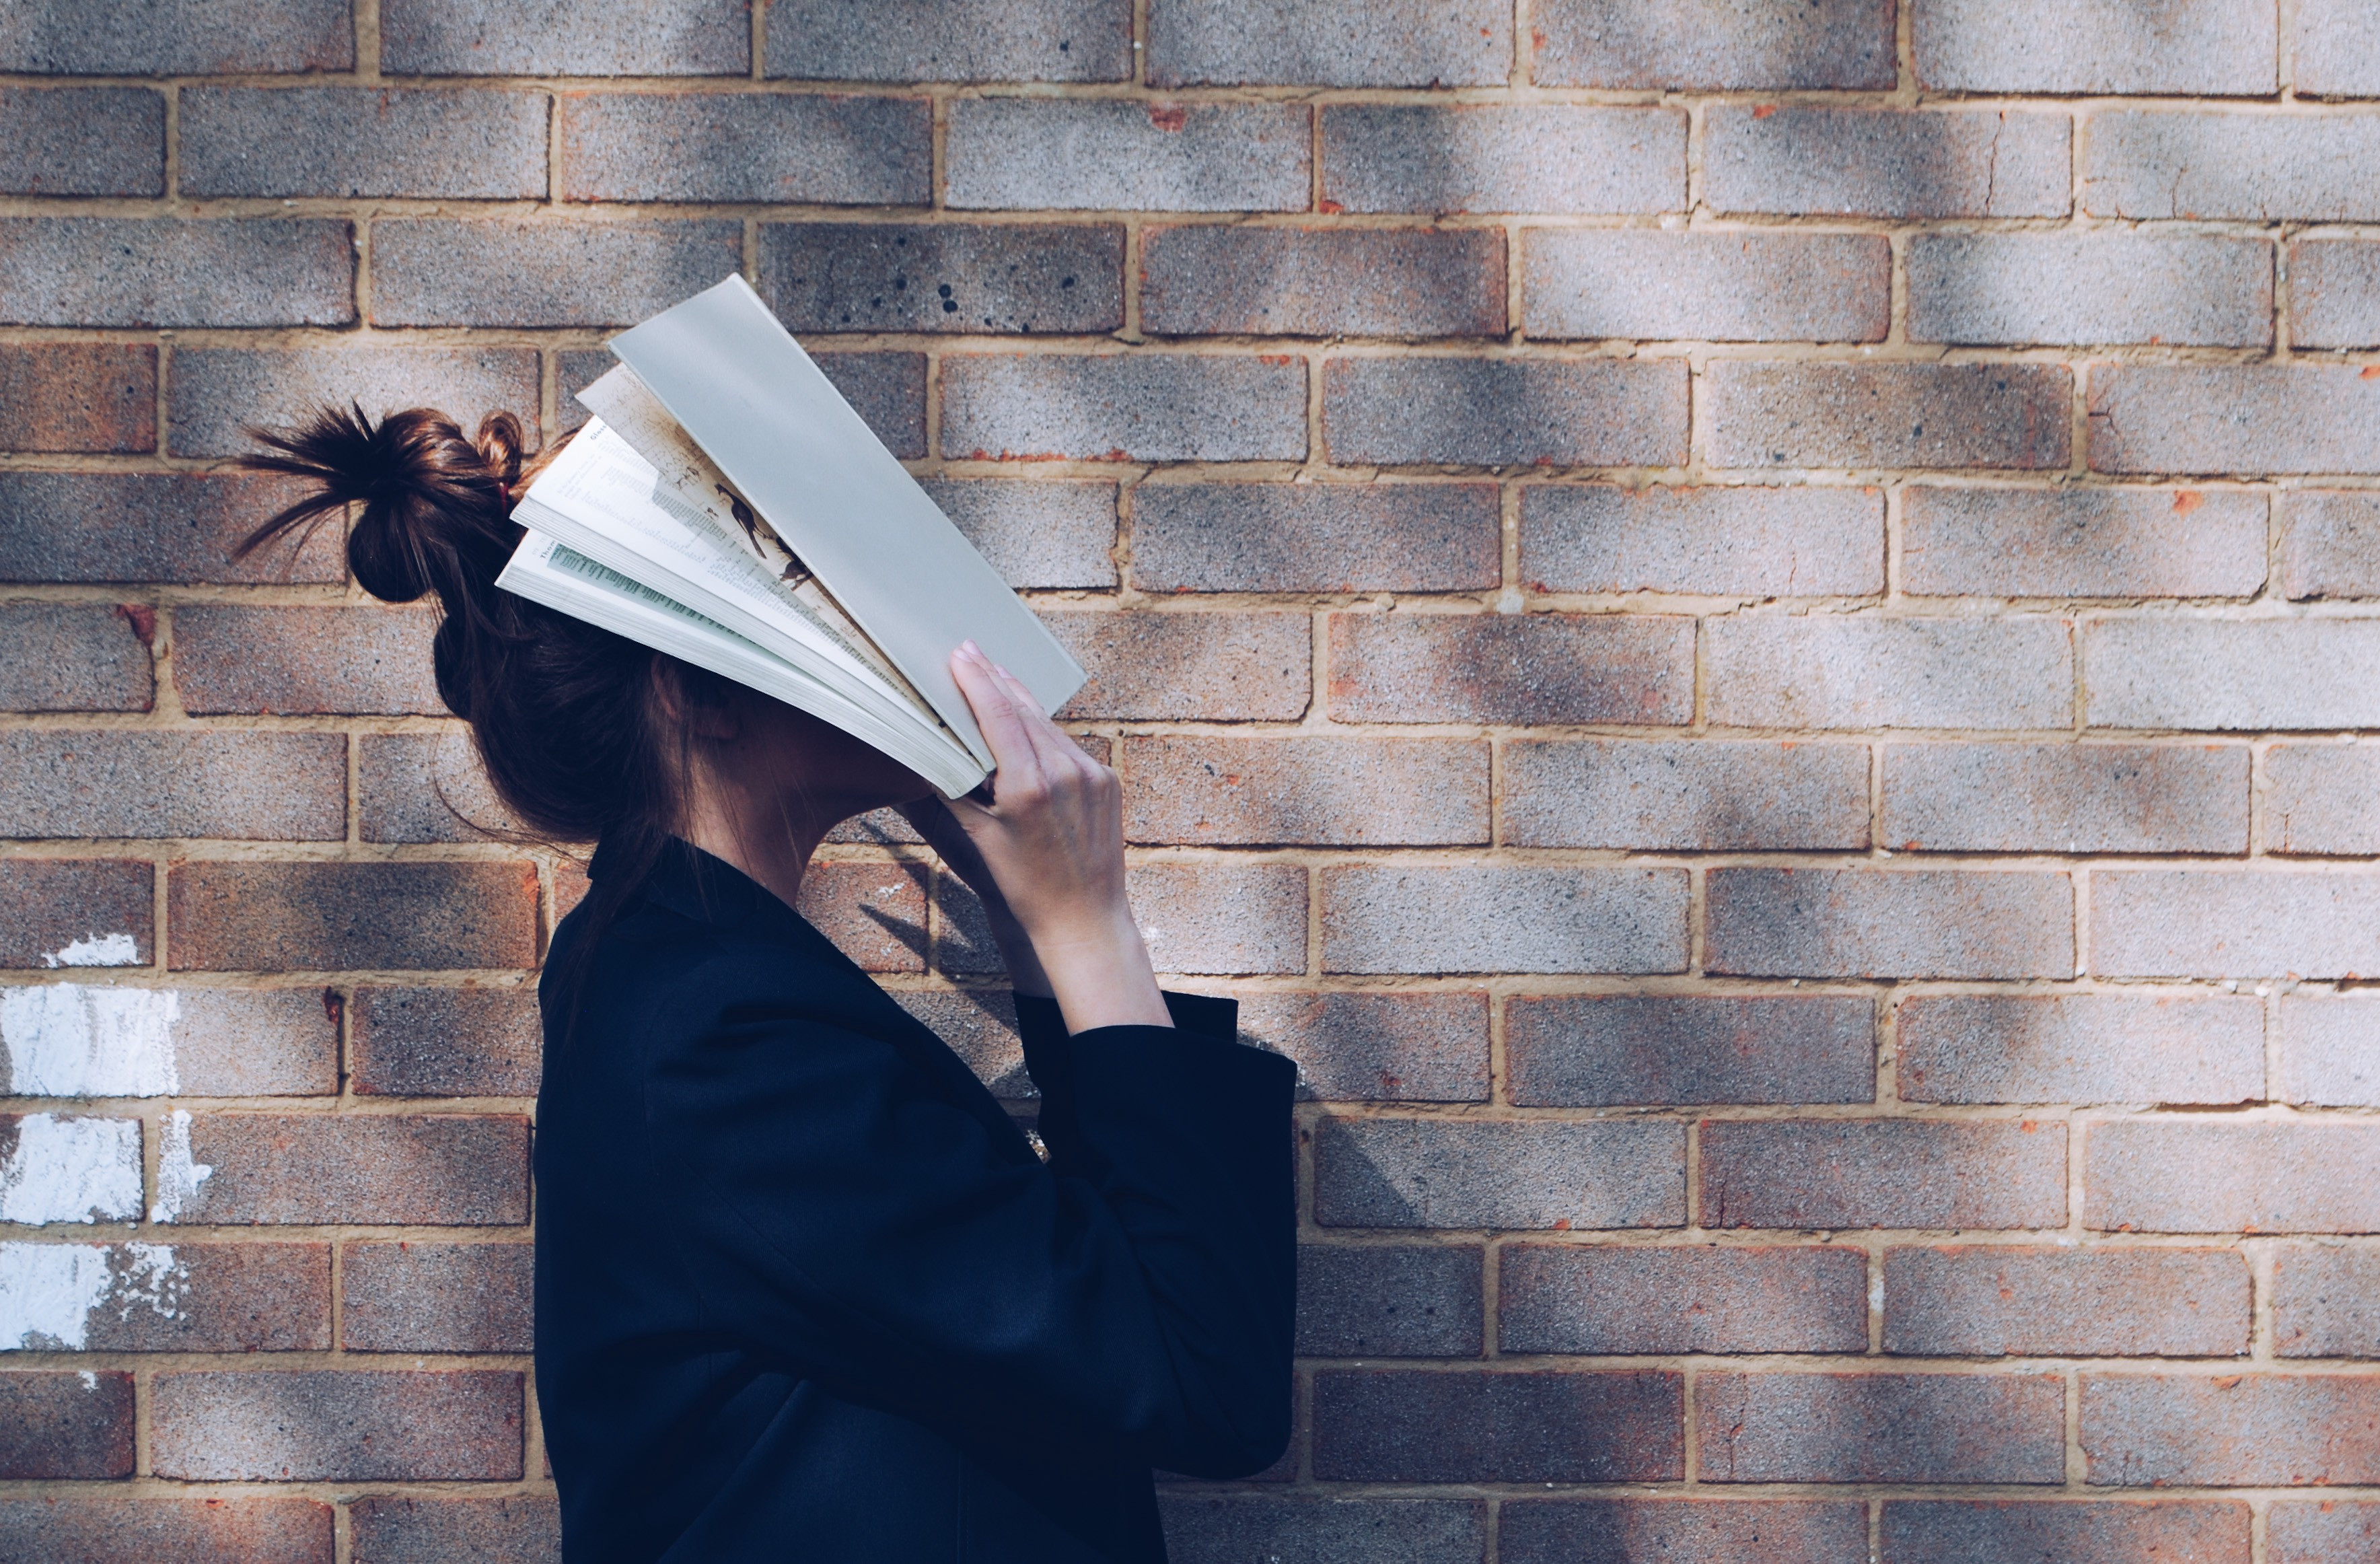 Girl stood next to a brick wall, holding a book over her face.